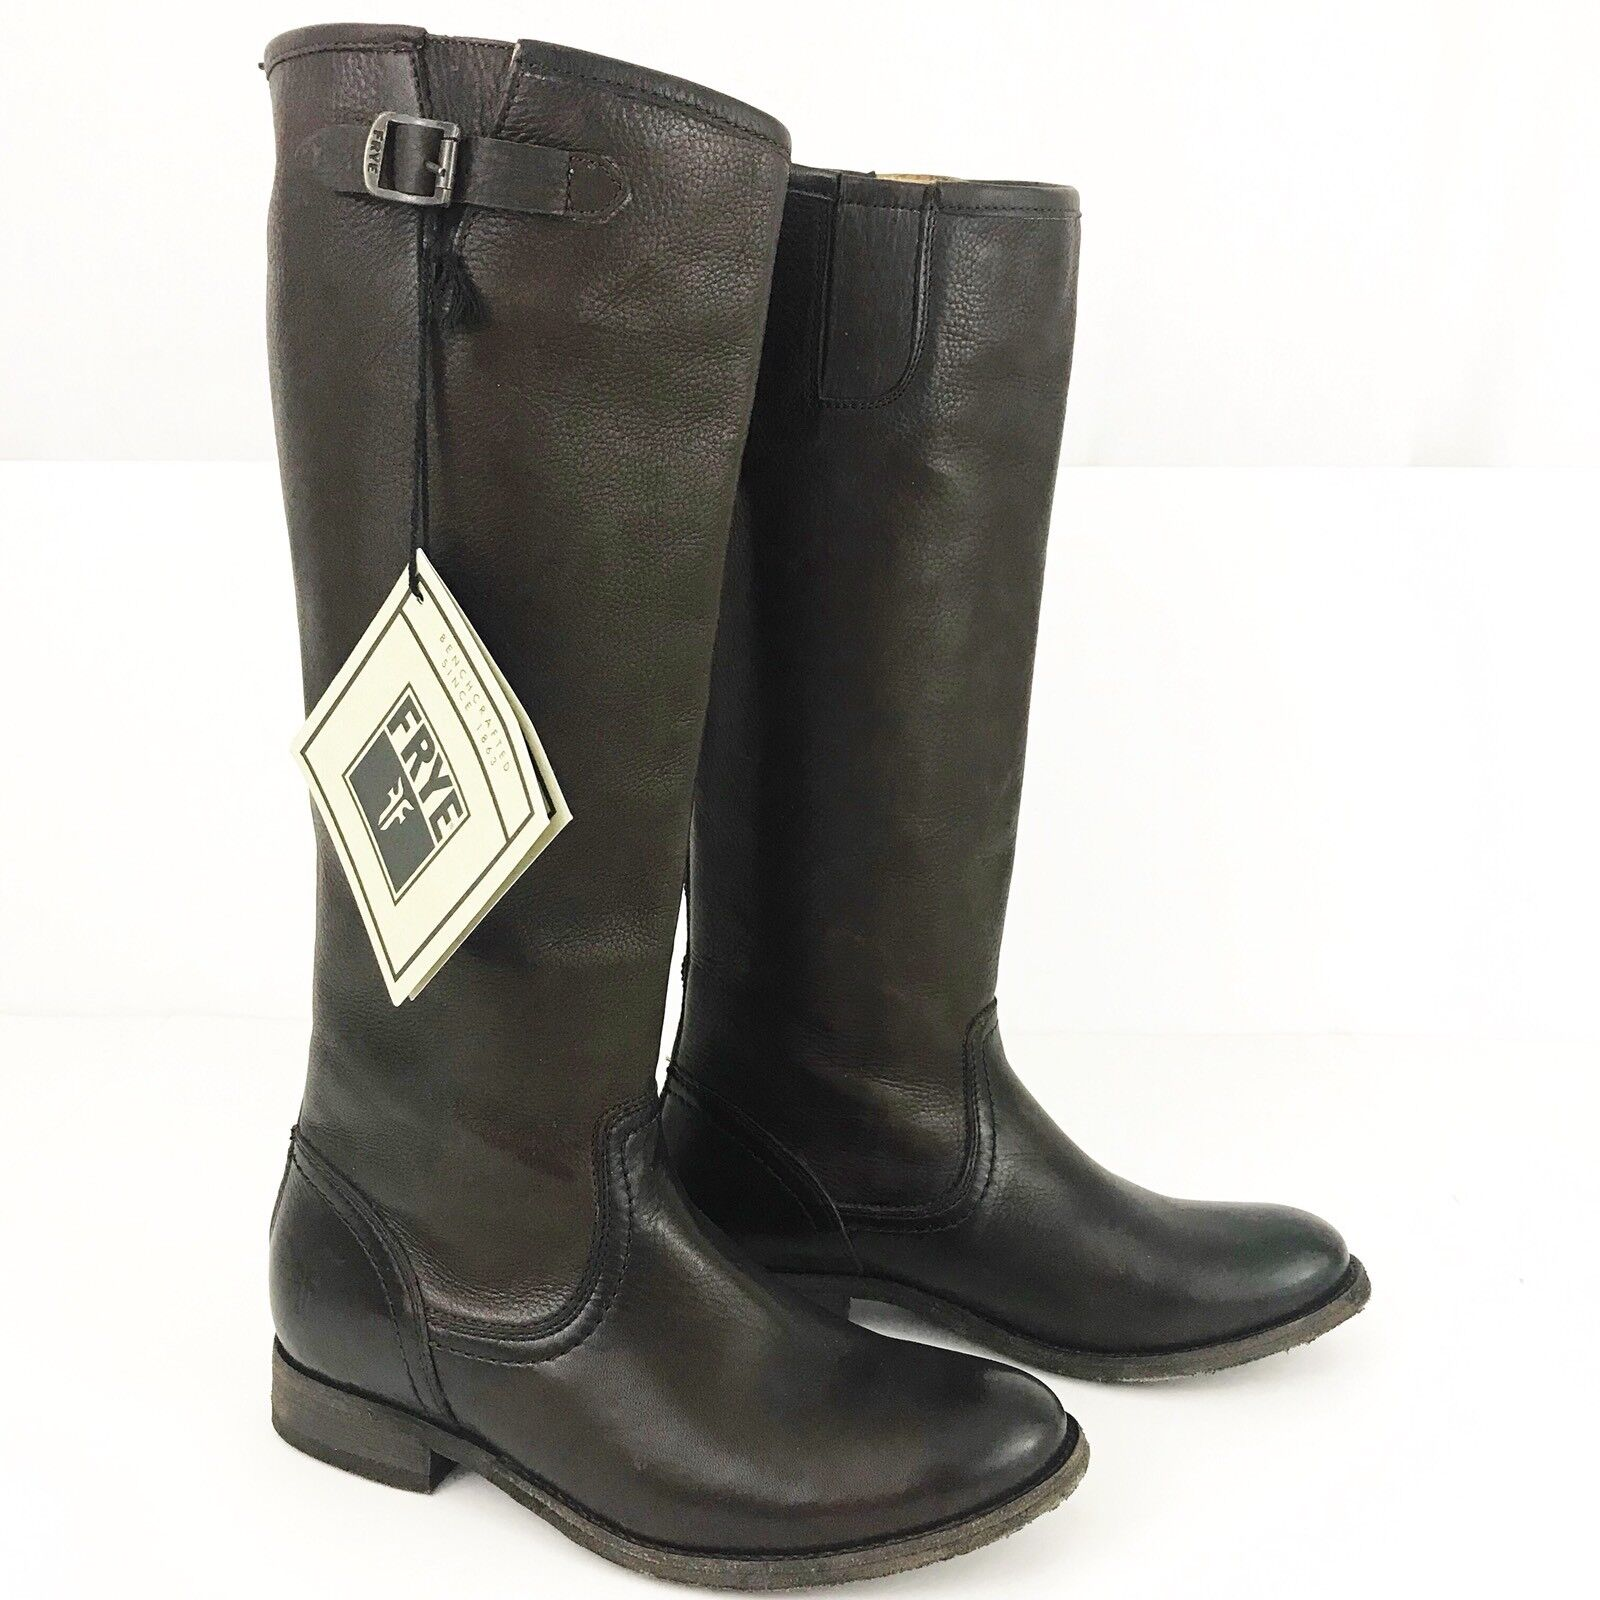 Frye Pippa Womens Leather Riding Dark Brown Tall Boots Size 6 New